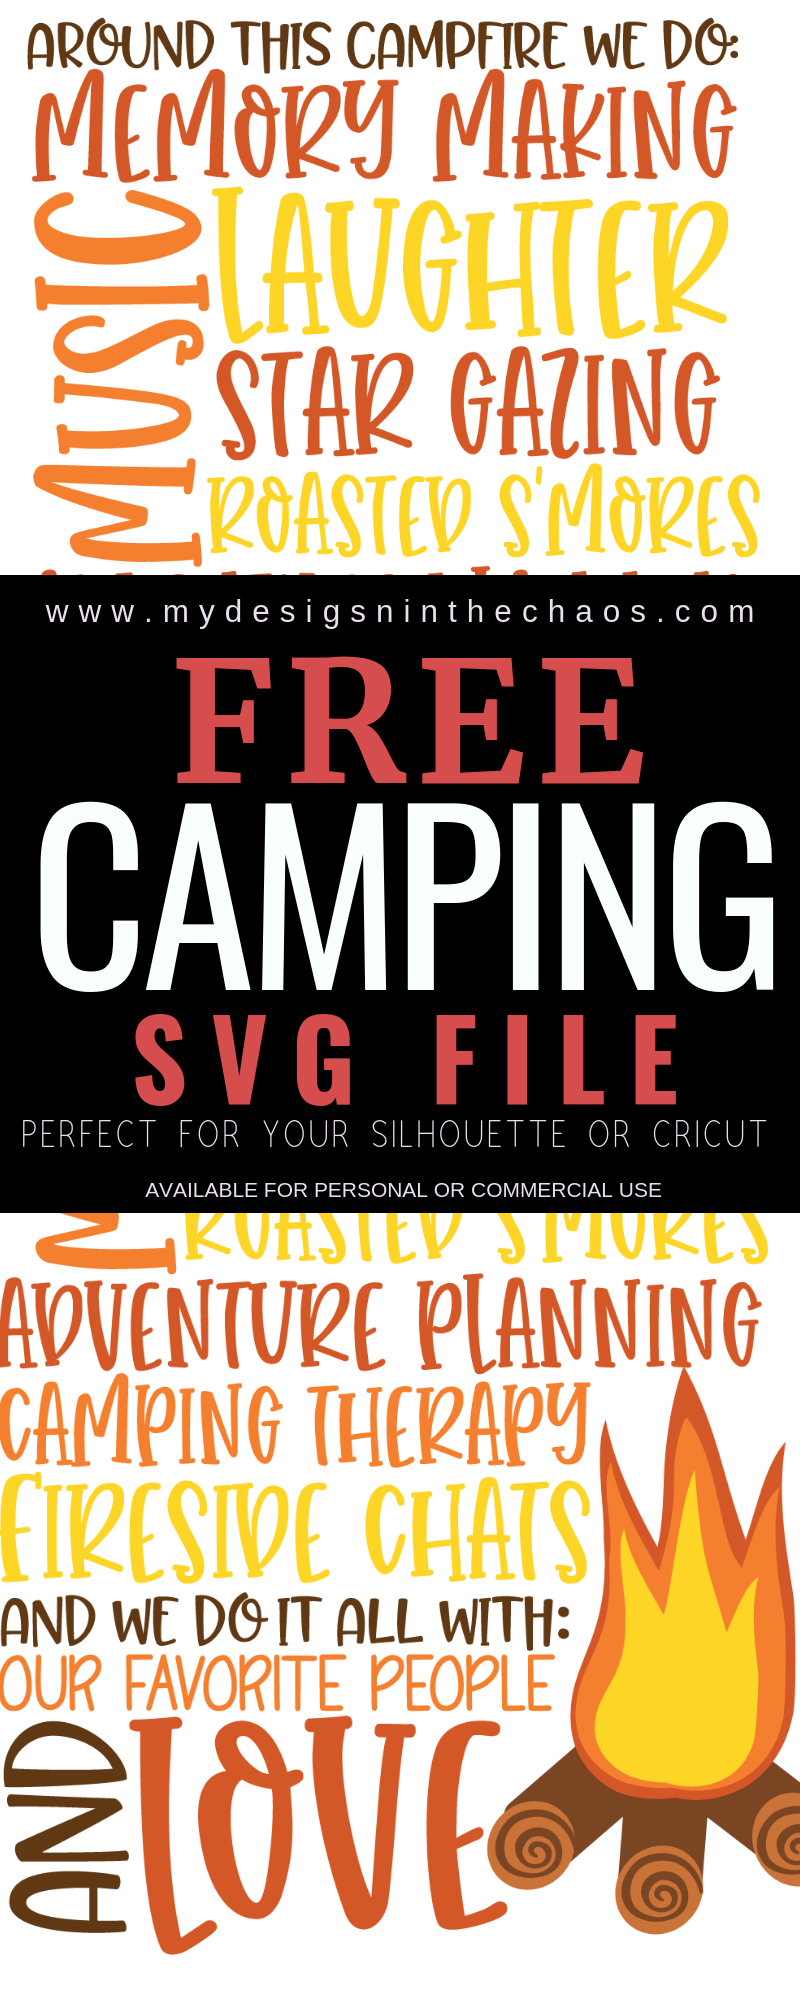 Free Camping SVG Silhouette cameo free, Cricut